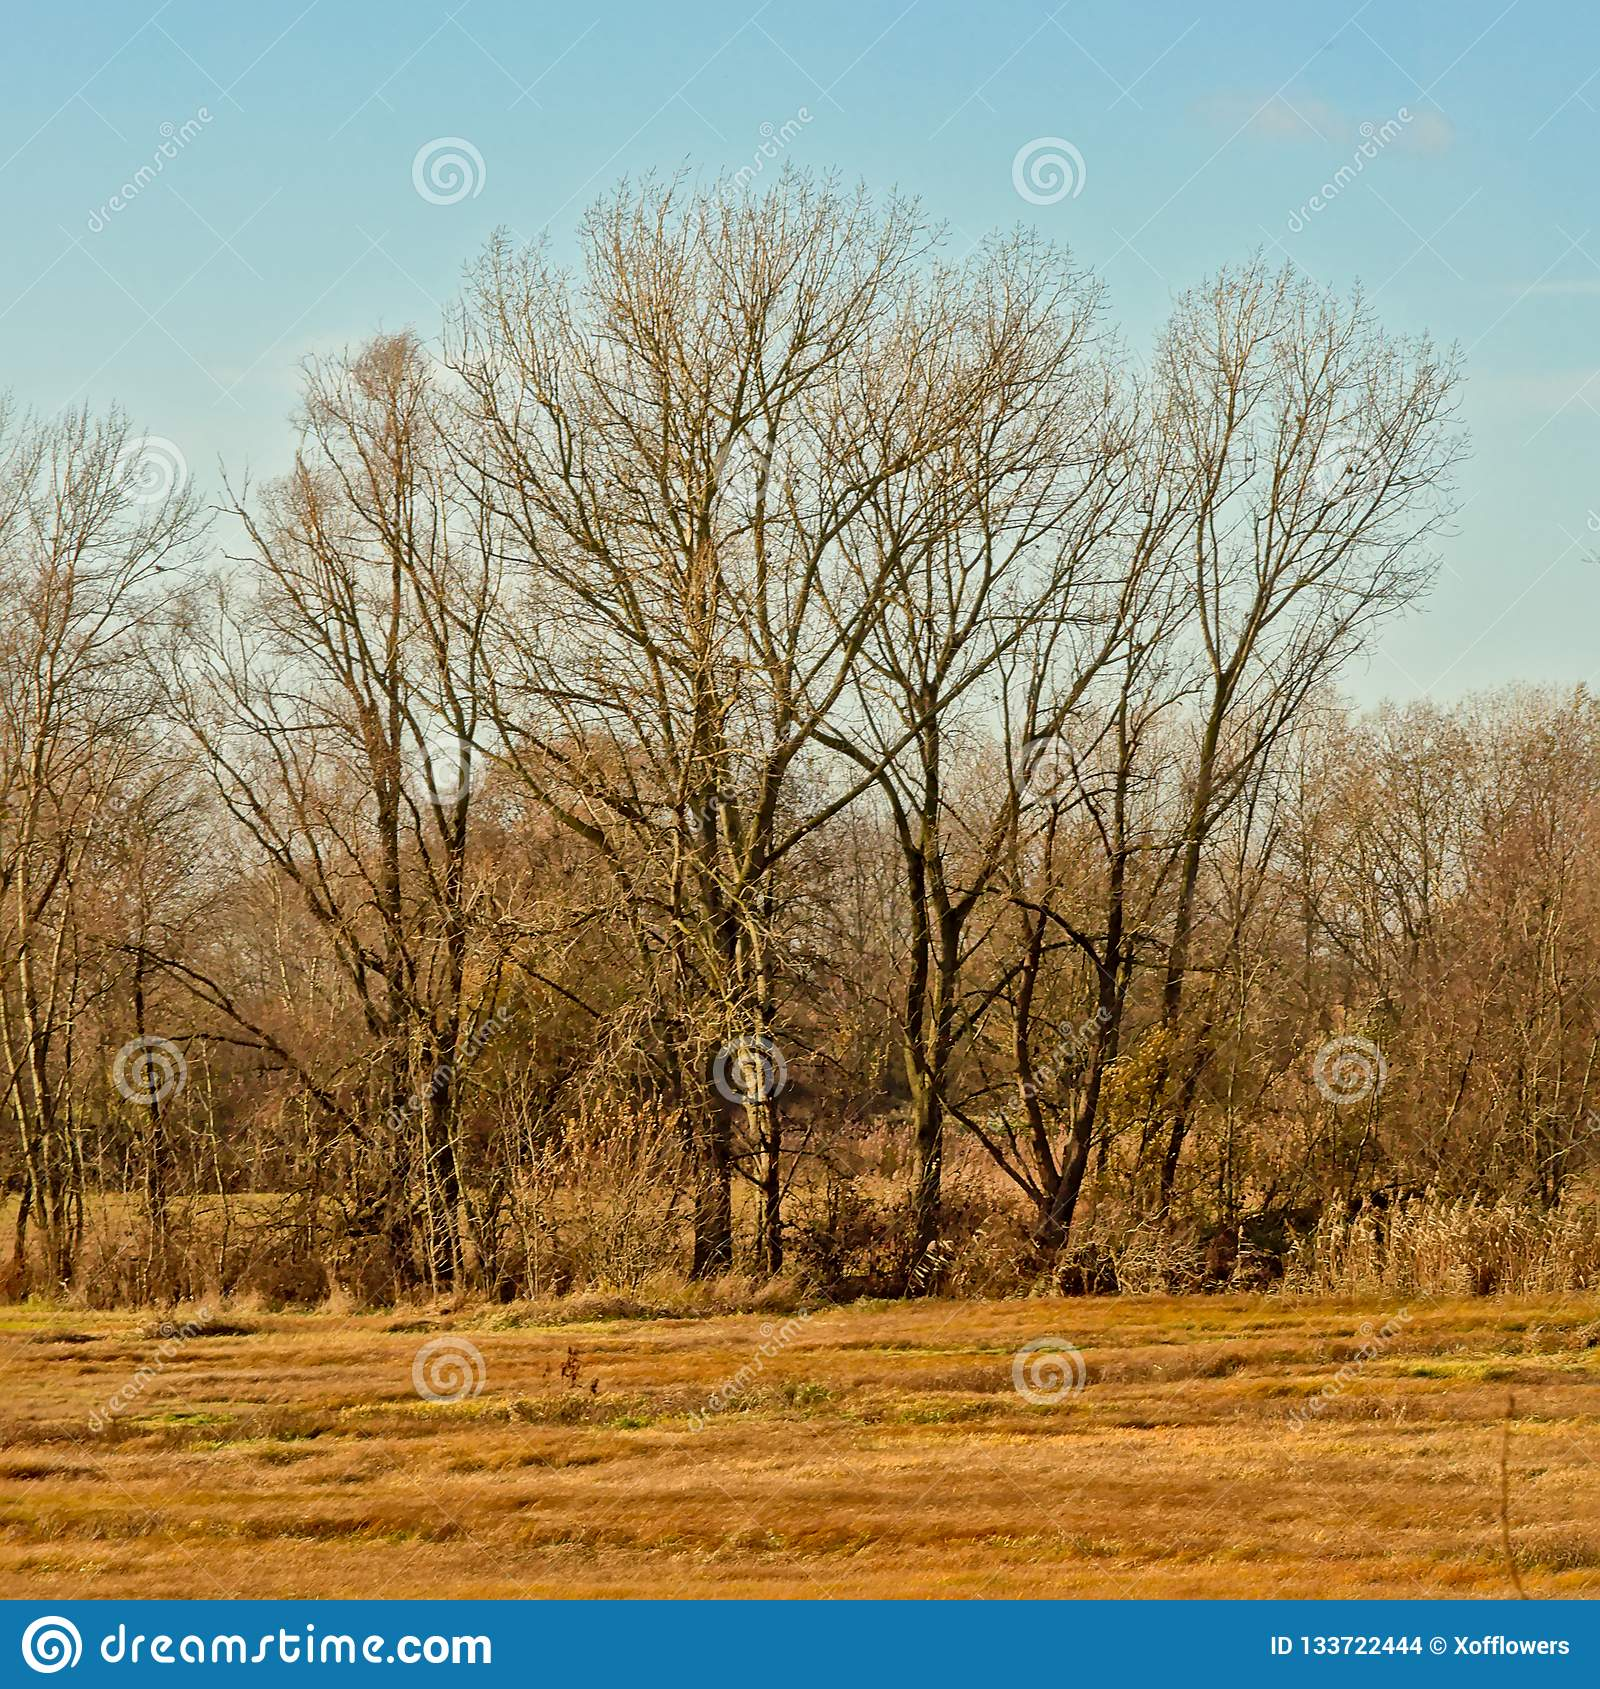 Bare winter elm trees in a sunny marsh landscape with meadows with dried golden gras and reed